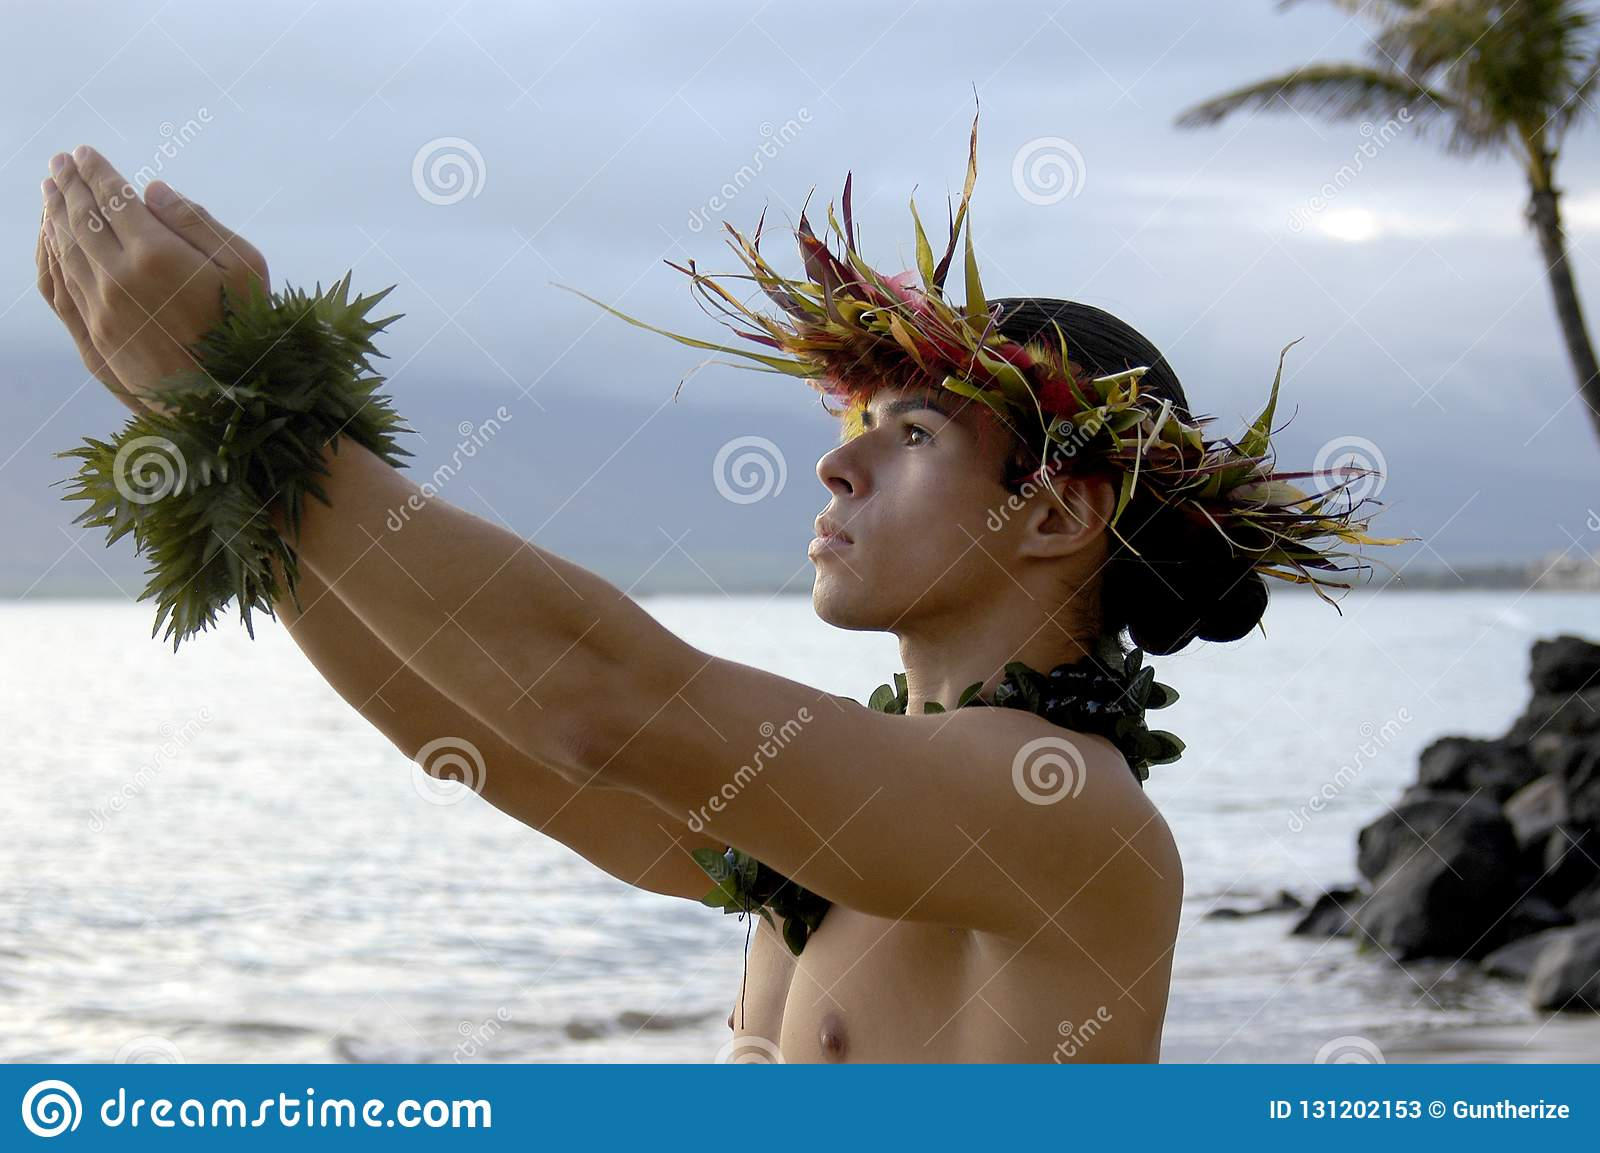 Male hula dancer praying and gesturing gifts to the heavens.